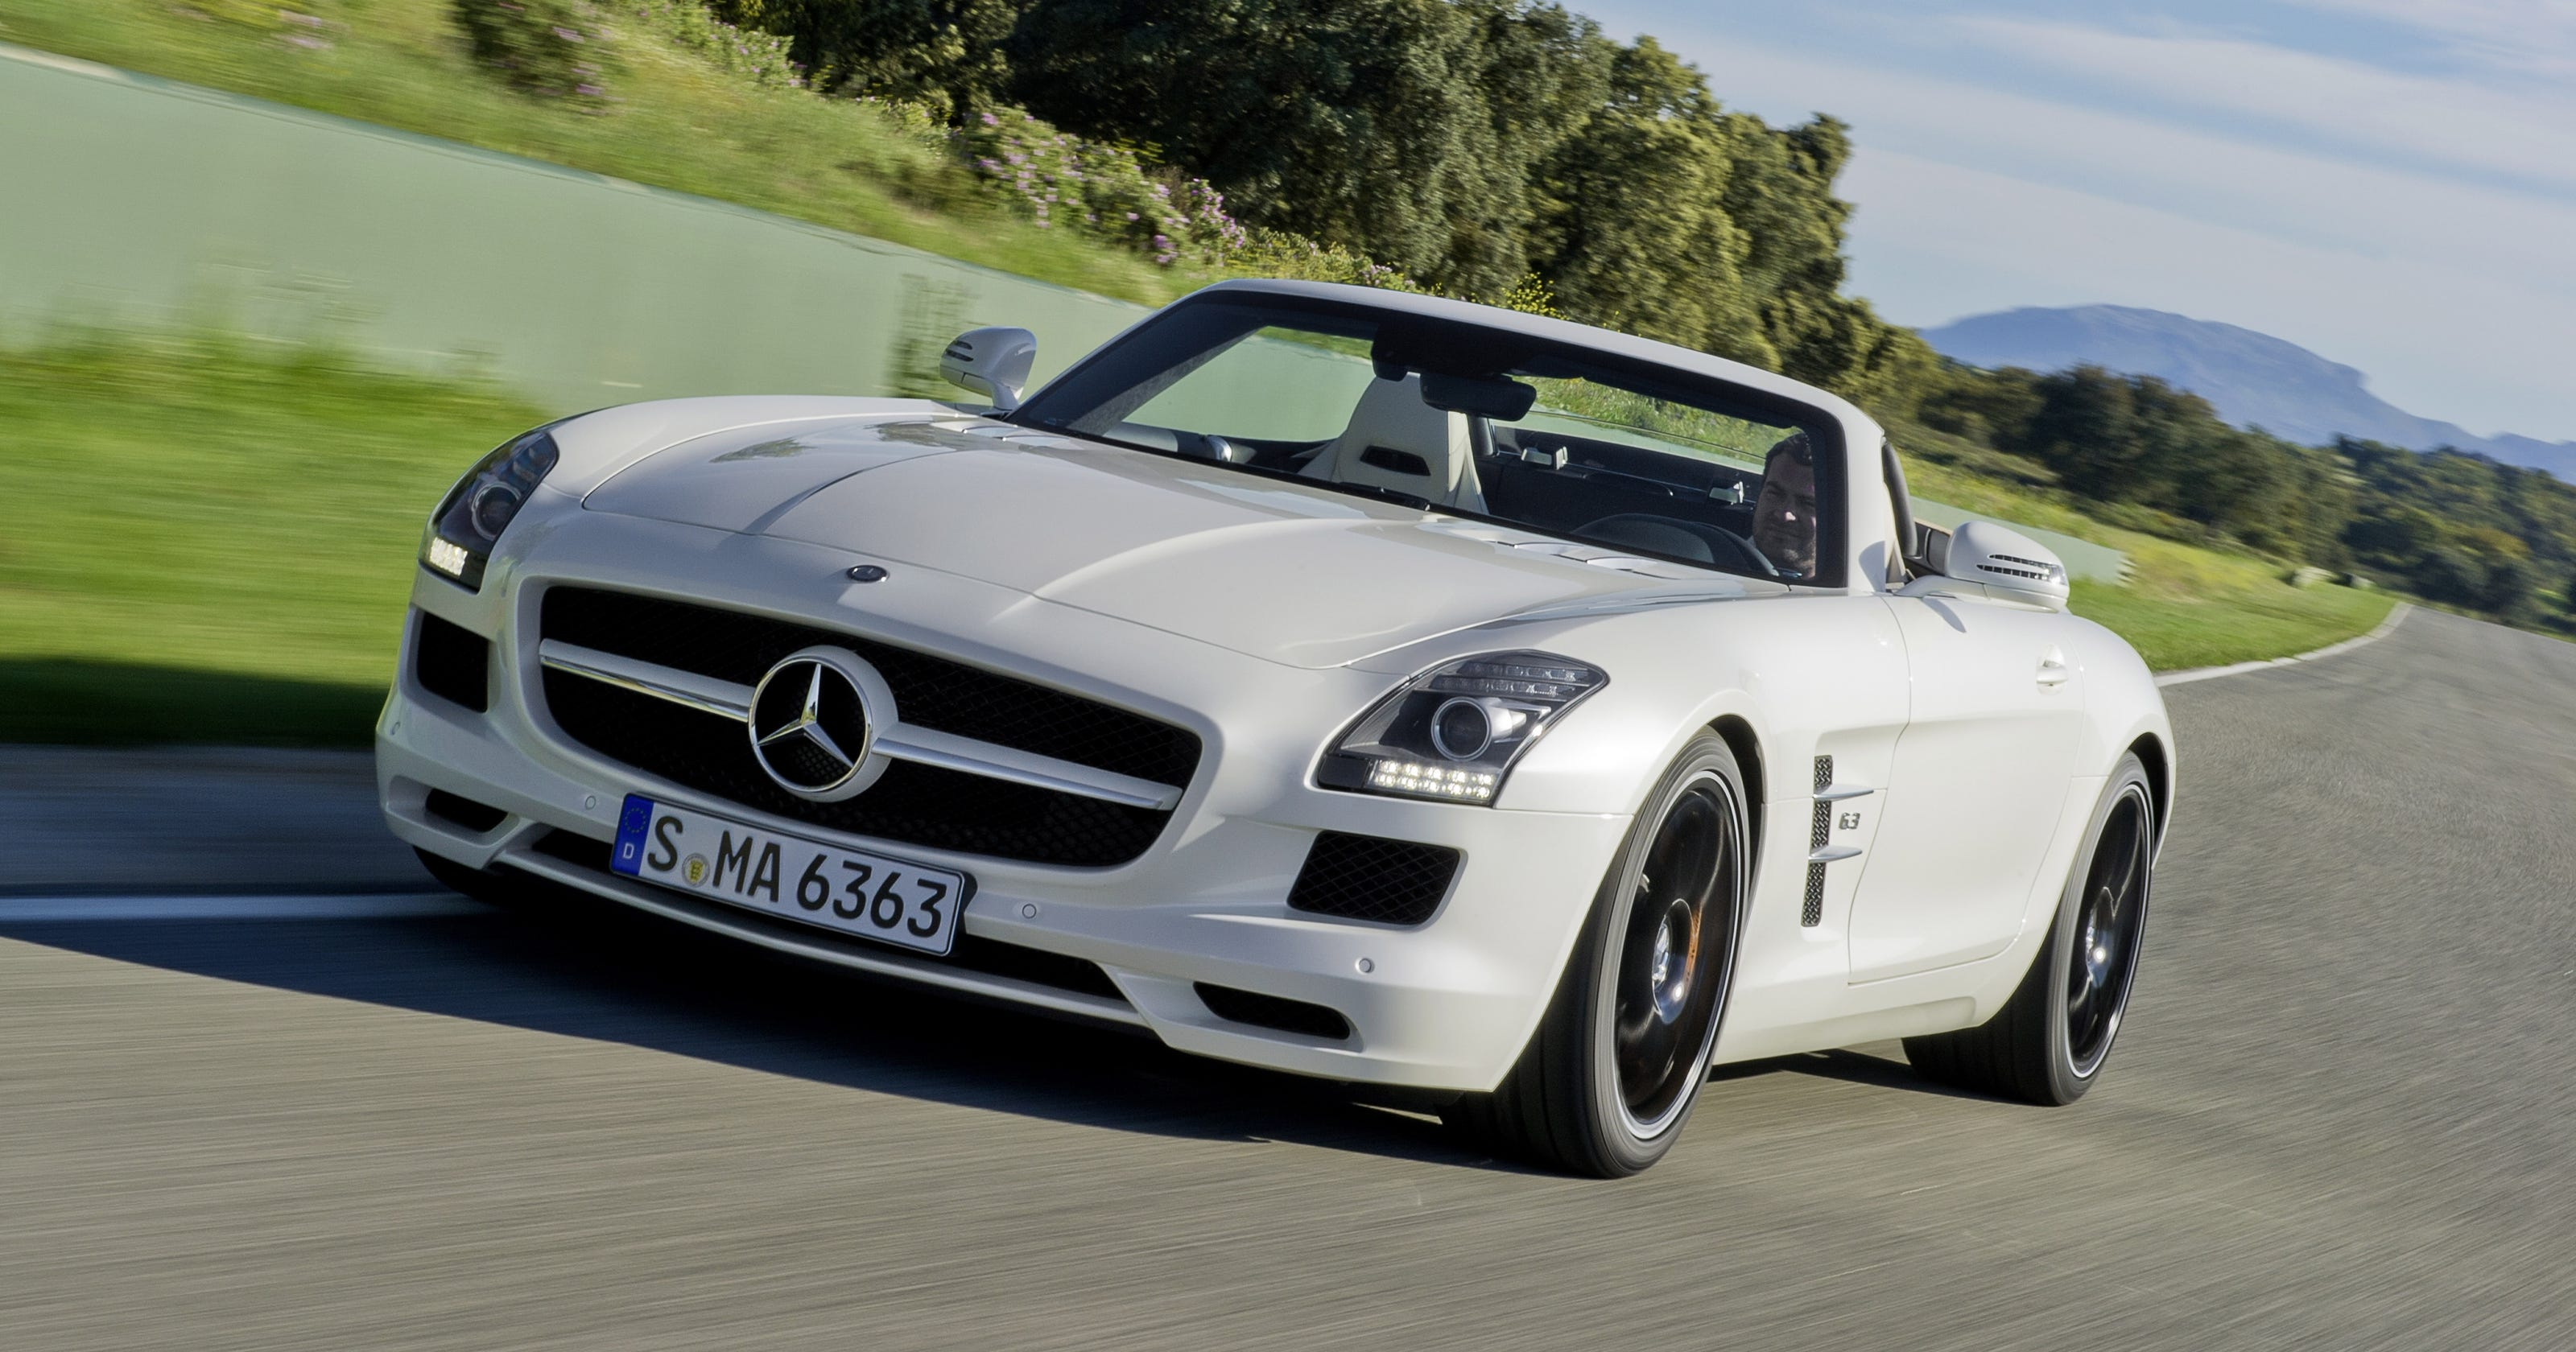 mercedes benz sls amg usa with 1652735 on 2017 Mercedes Amg Gt R Green Masterpiece besides Detail 2018 Mercedes benz Amg gt Amg gt s coupe New 17282669 furthermore 2009 04 01 archive likewise Mercedes Benz 300 SL also Gallery Detail.